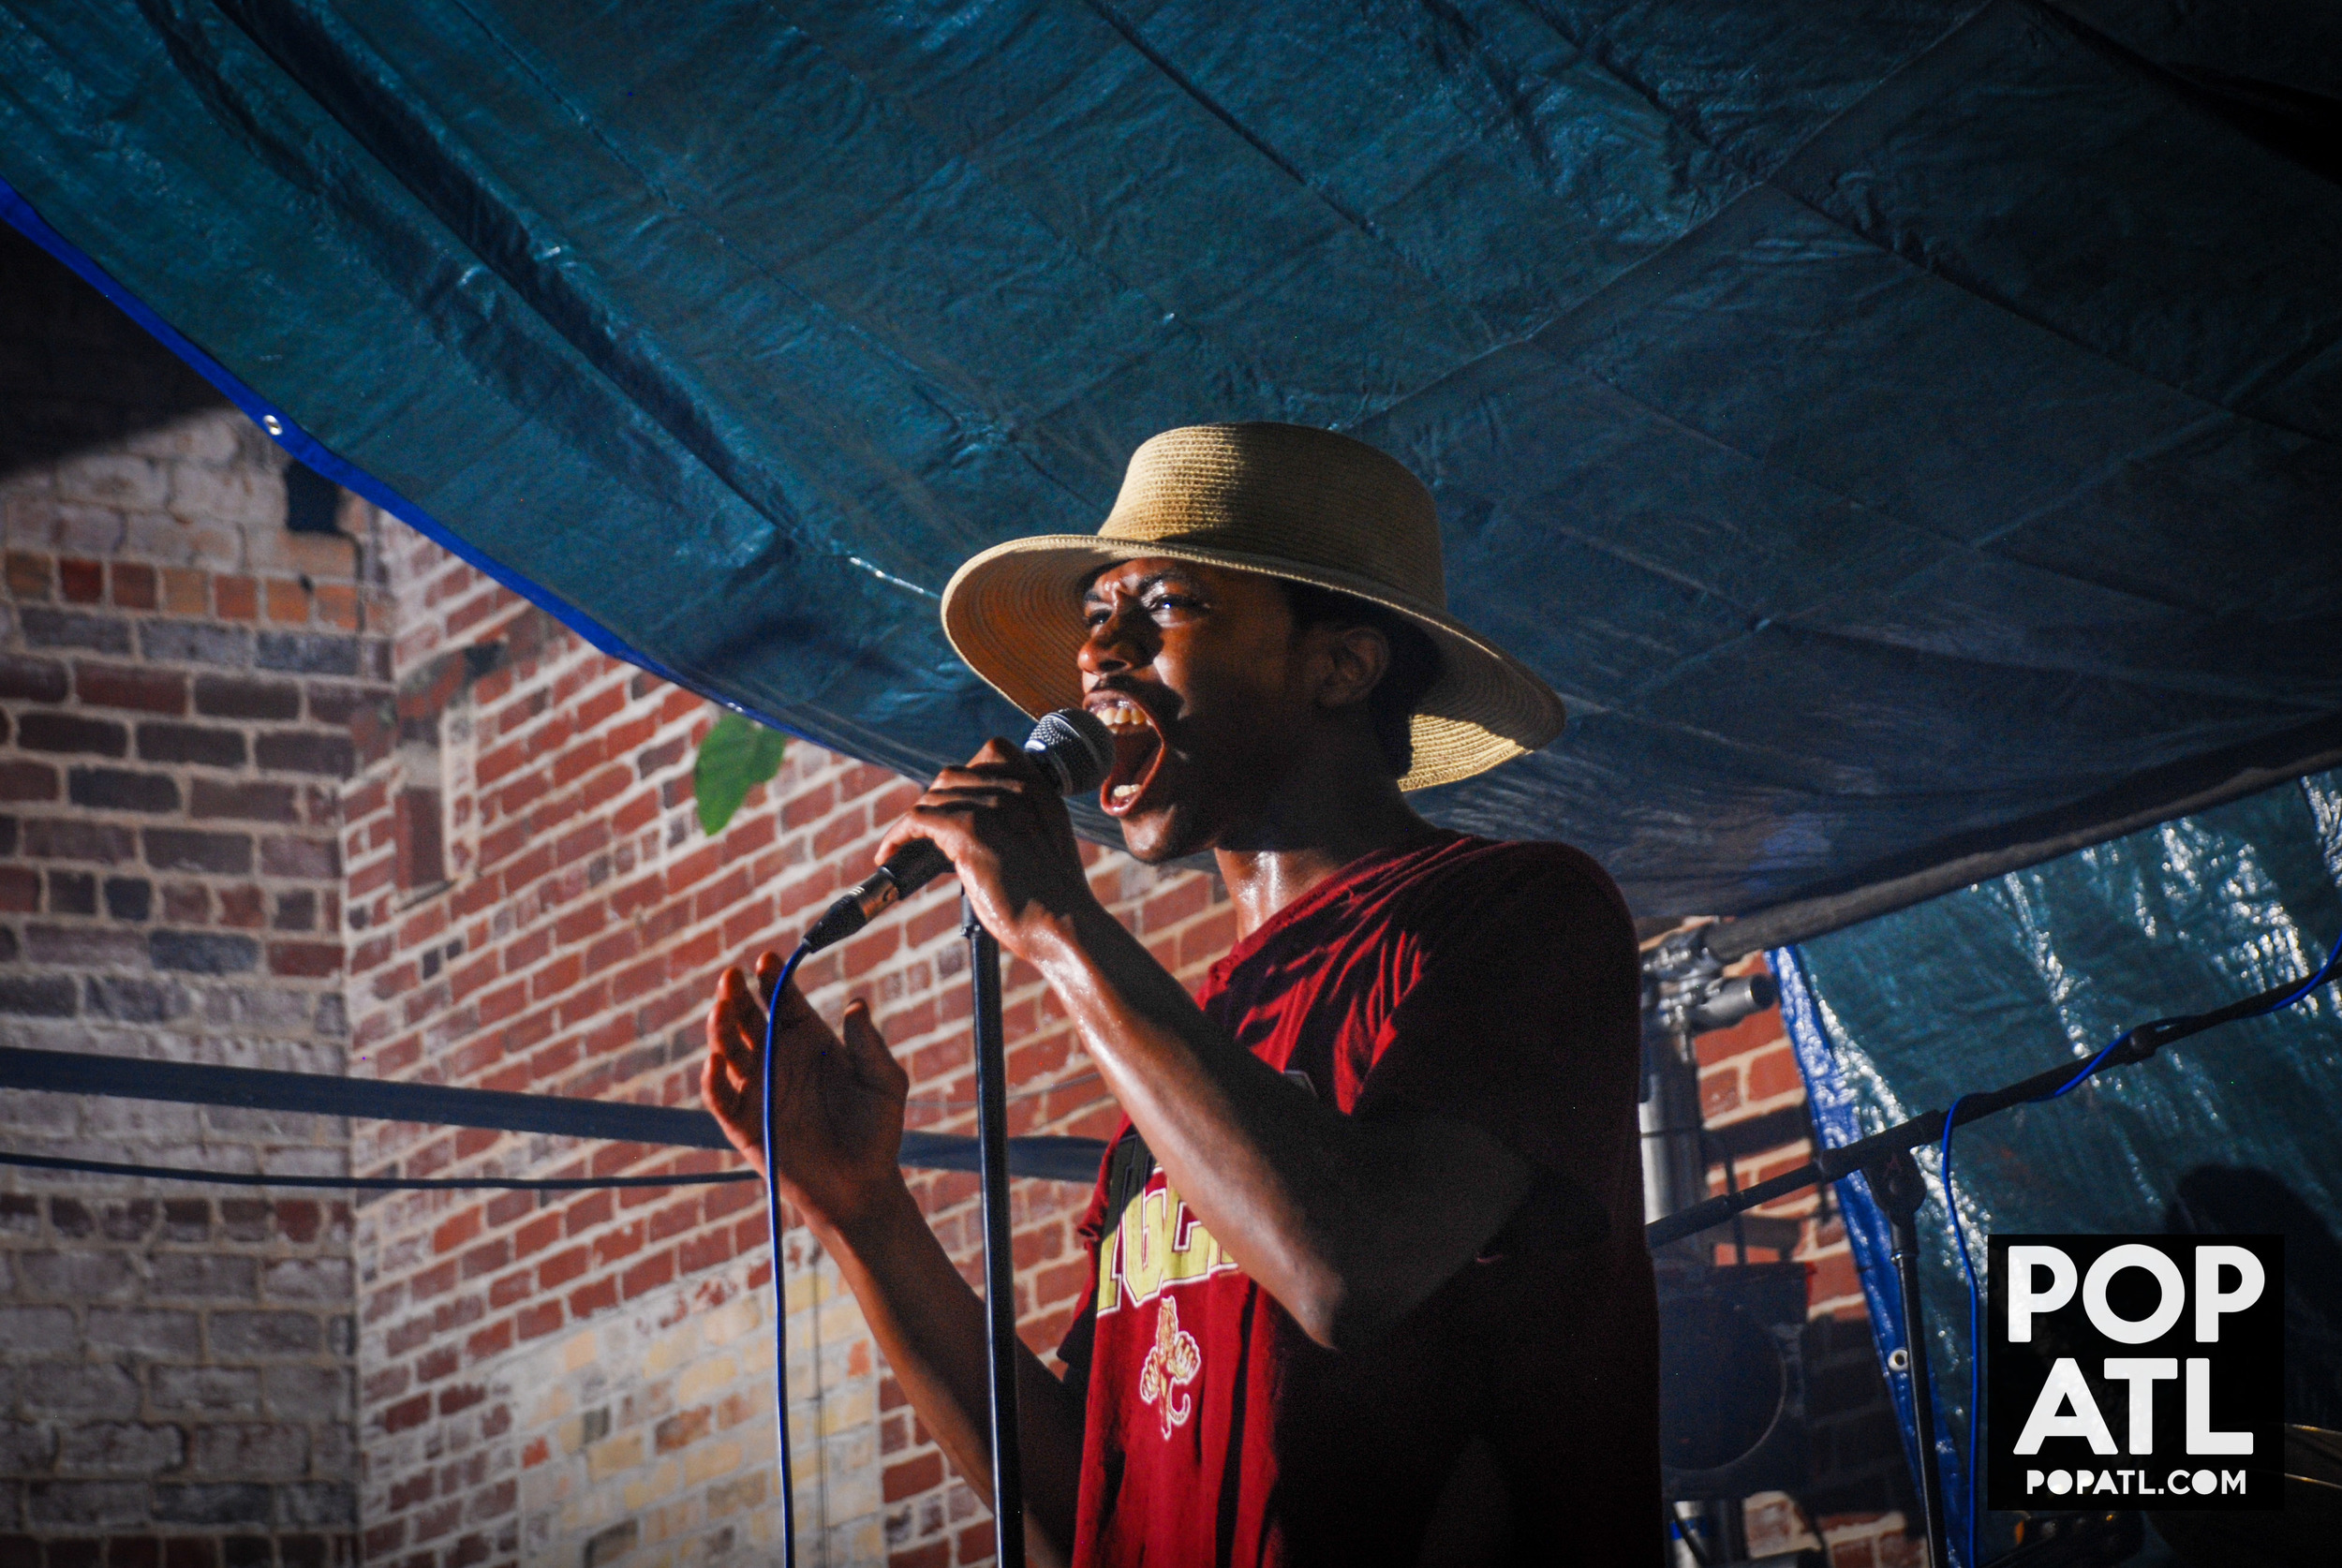 RAURY-RAURFEST-AT-POP-ATL-176.jpg